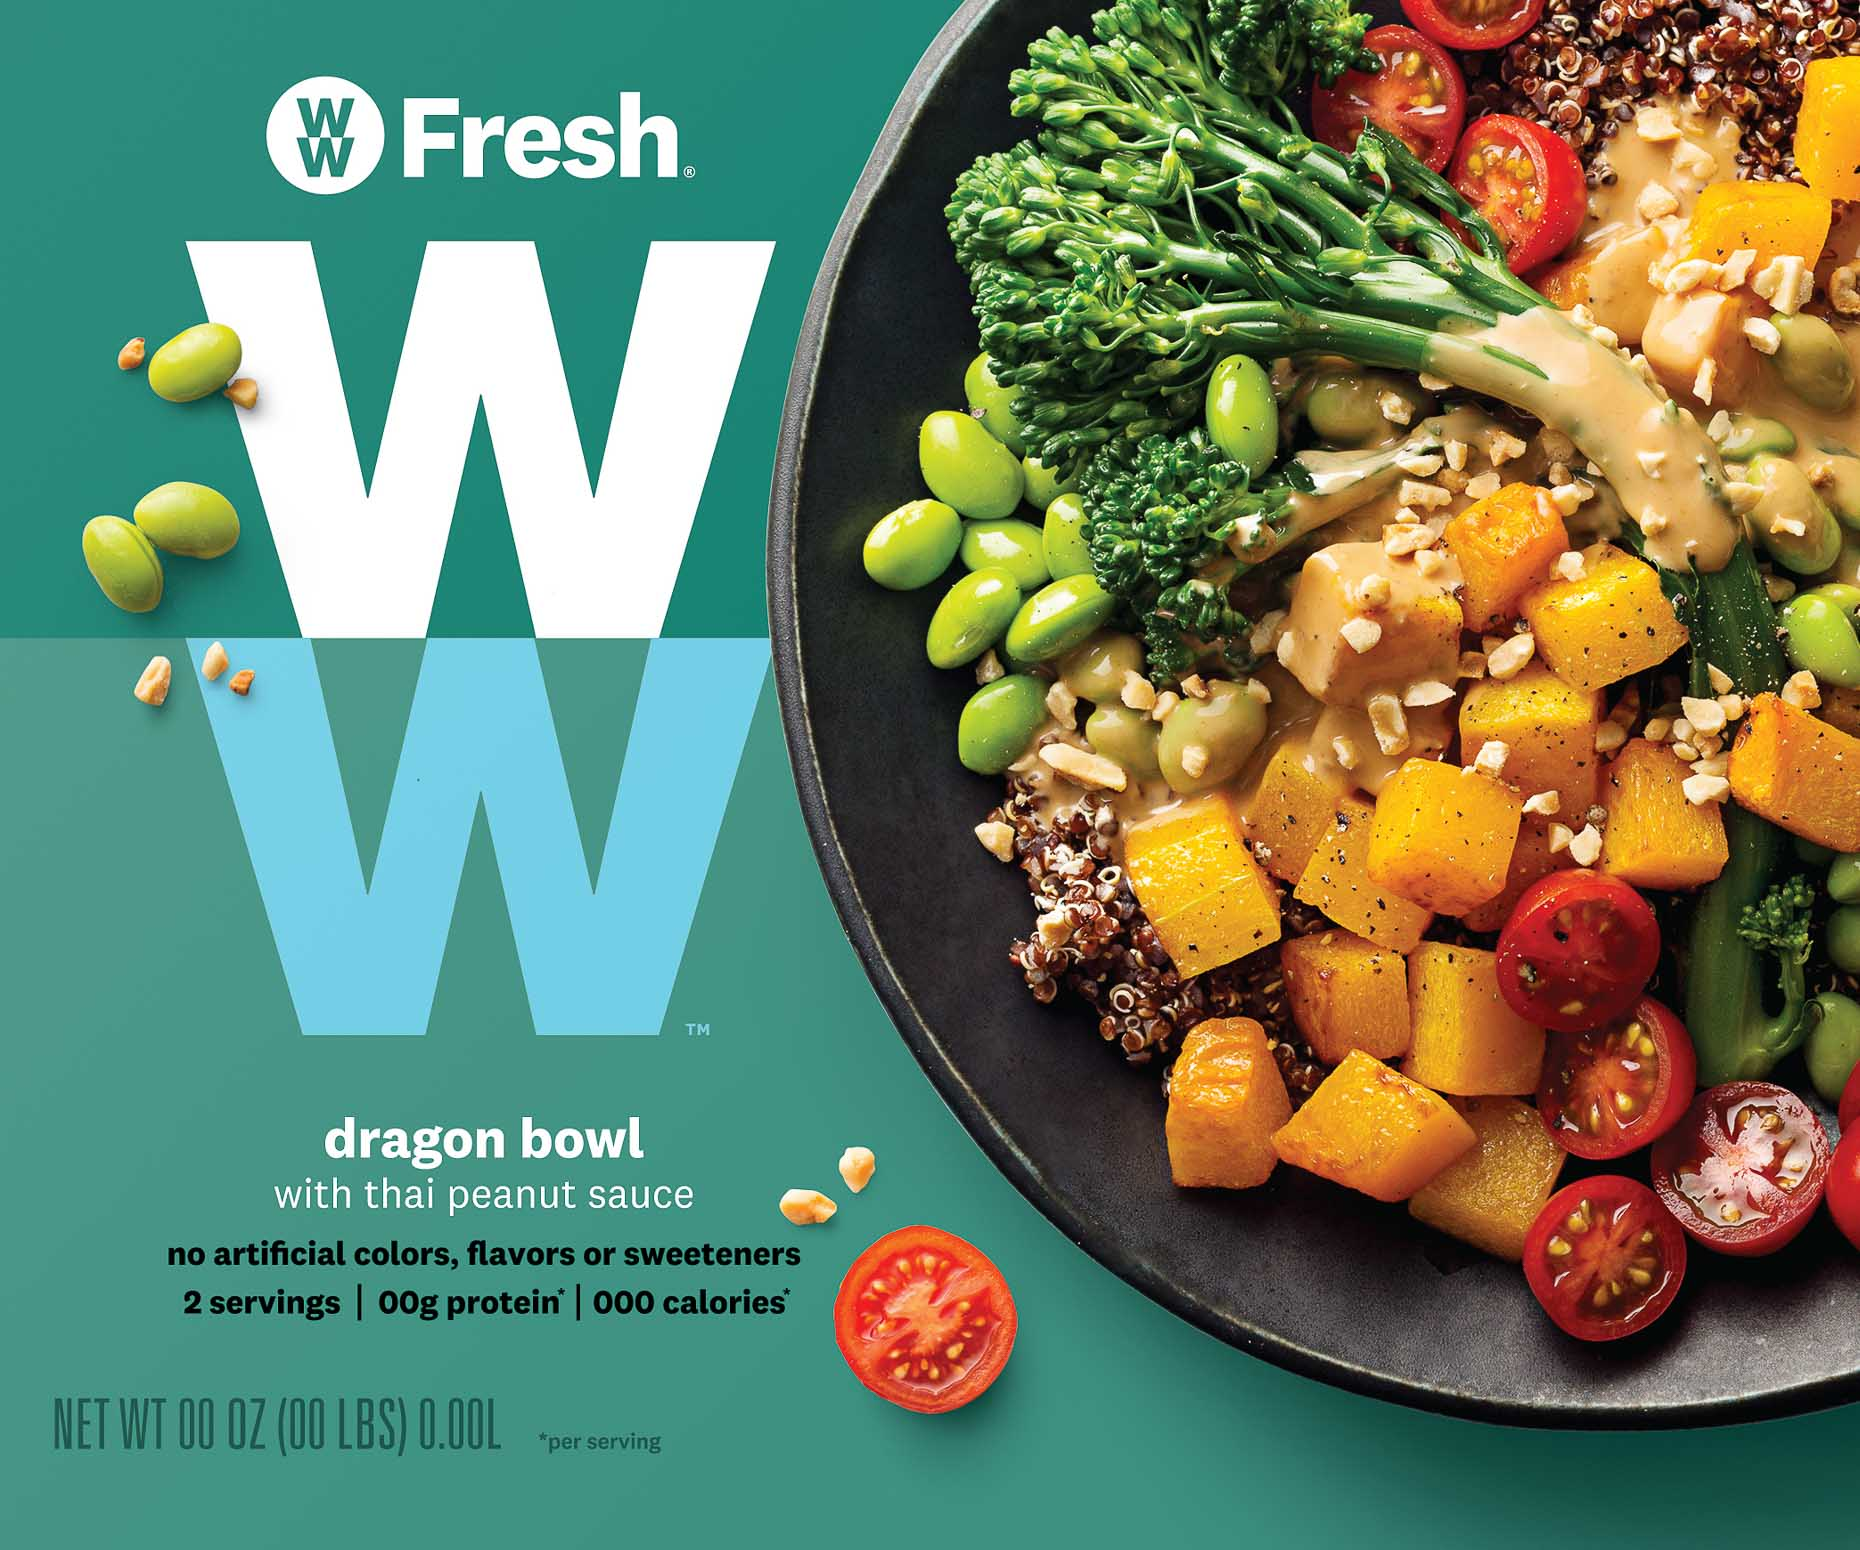 180822_WWFresh_DragonBowl_INSERT_OL